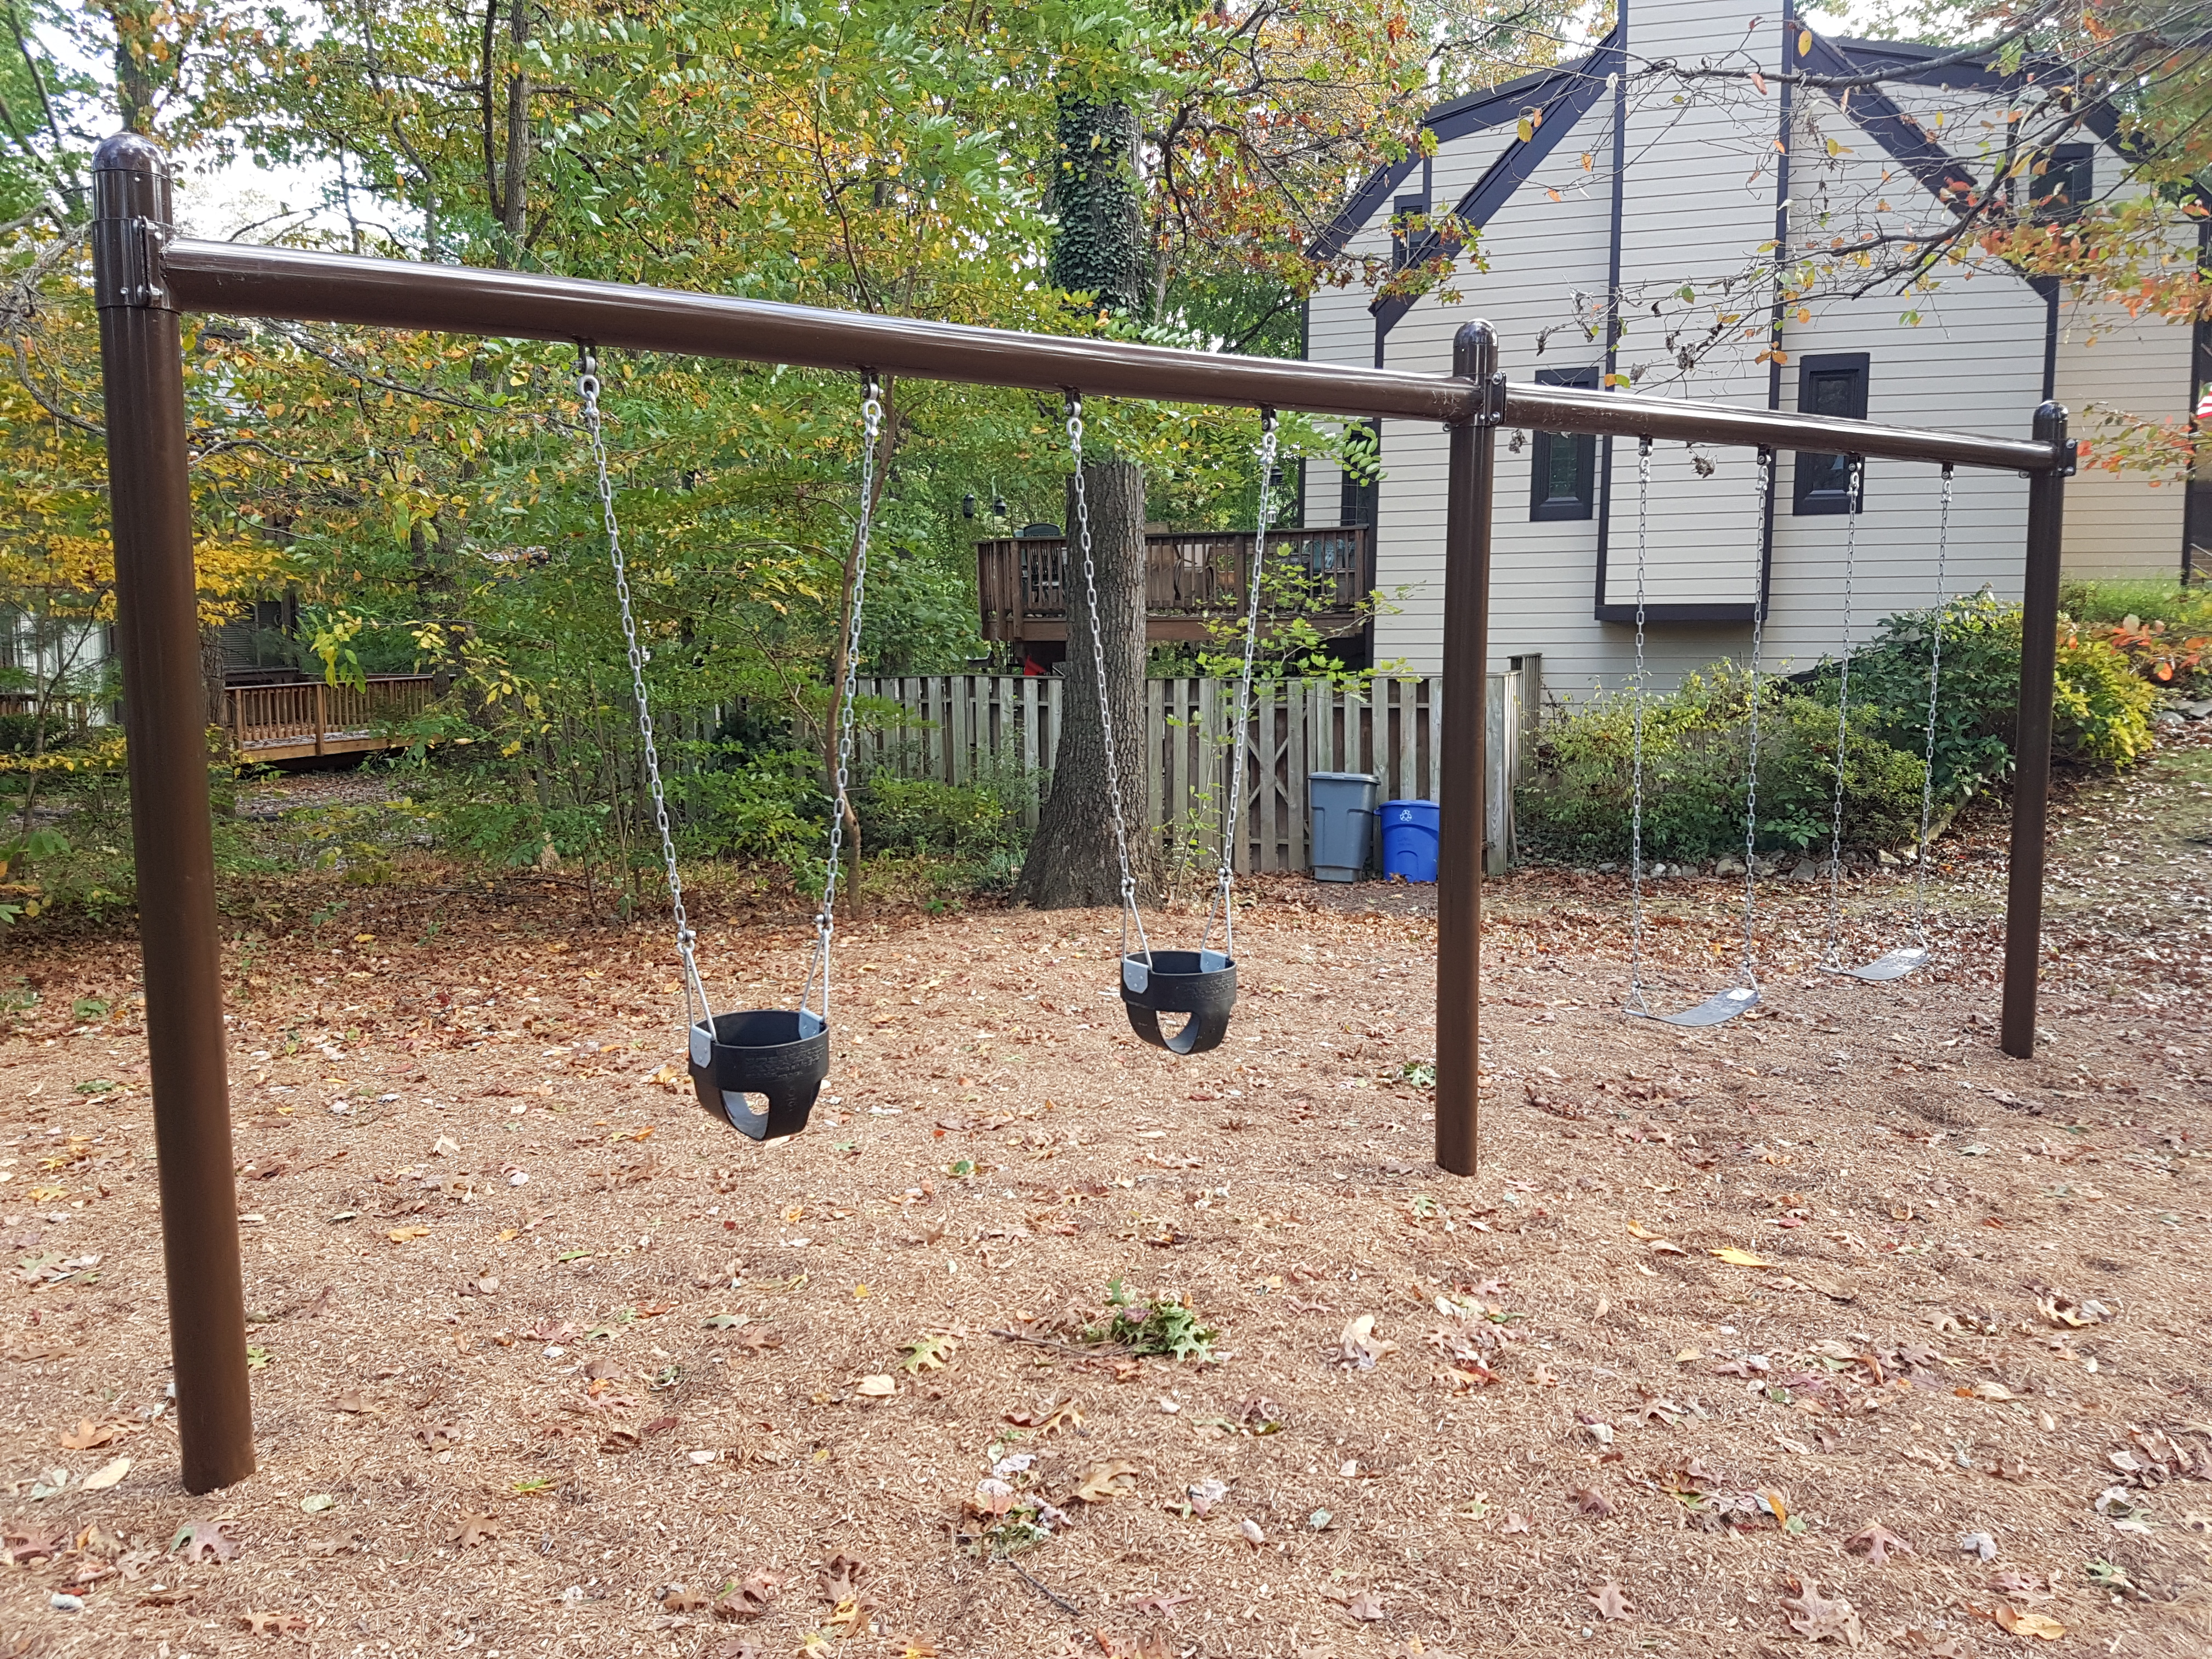 New Tot Lot Swings